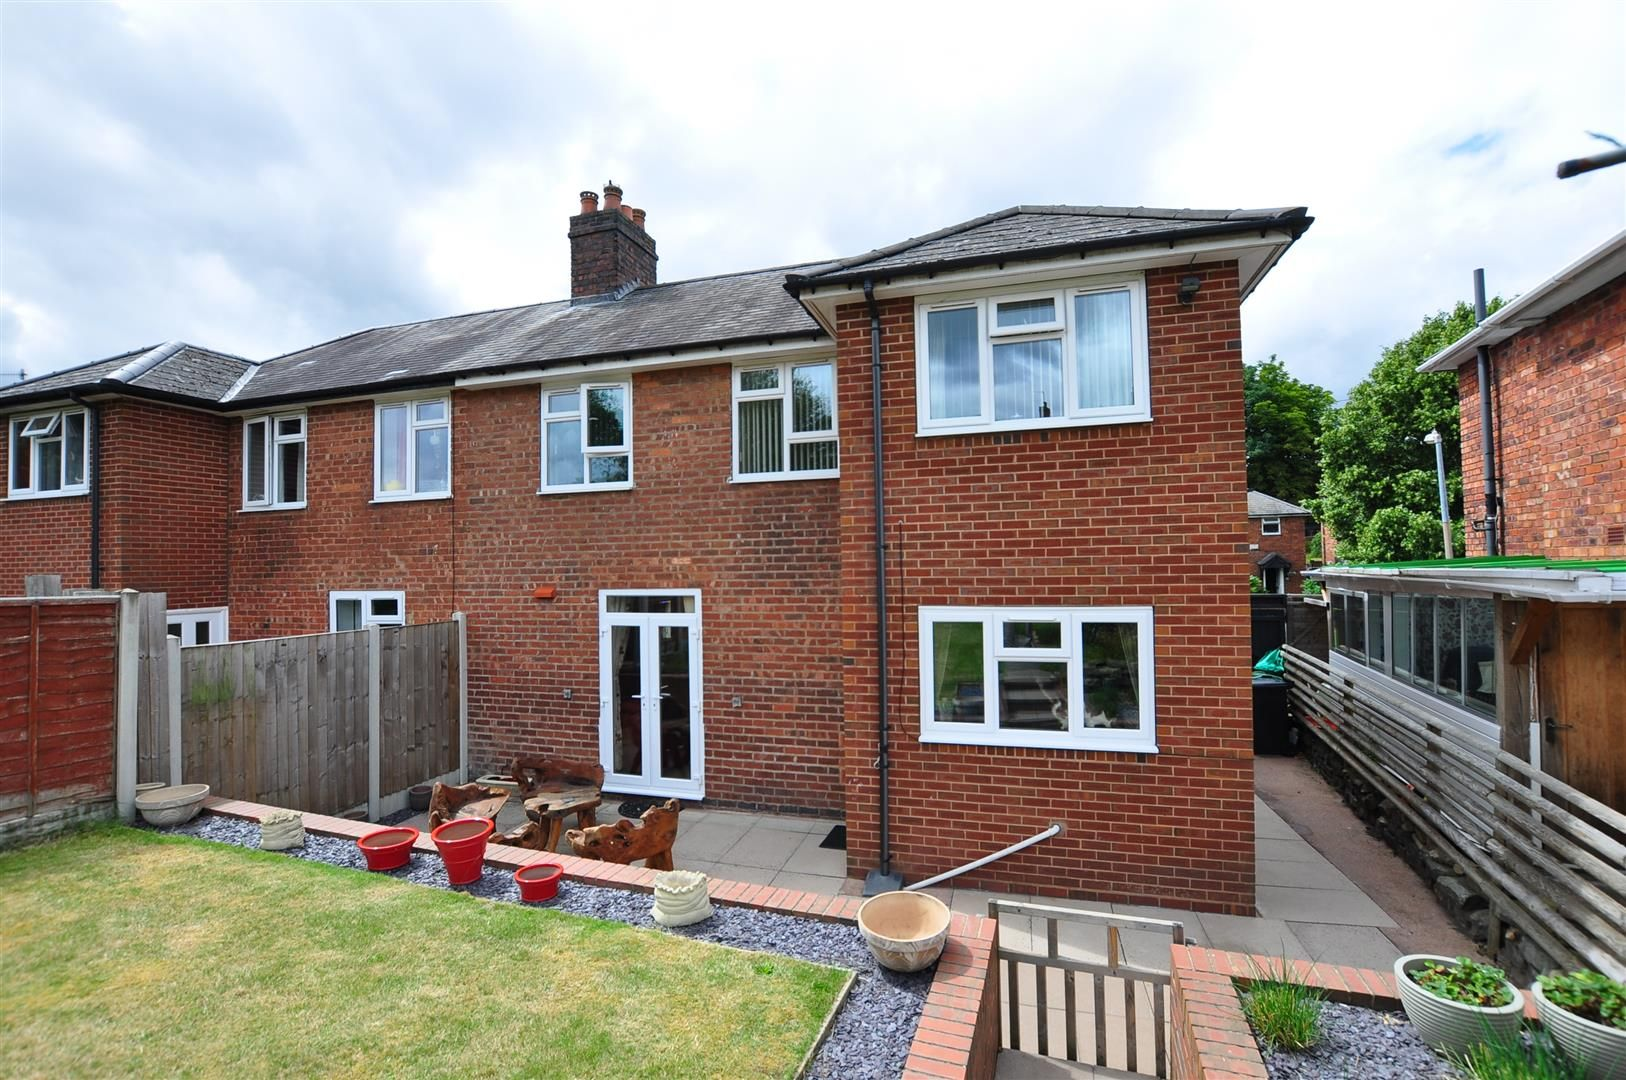 3 bed semi-detached for sale in Lower Gornal 20